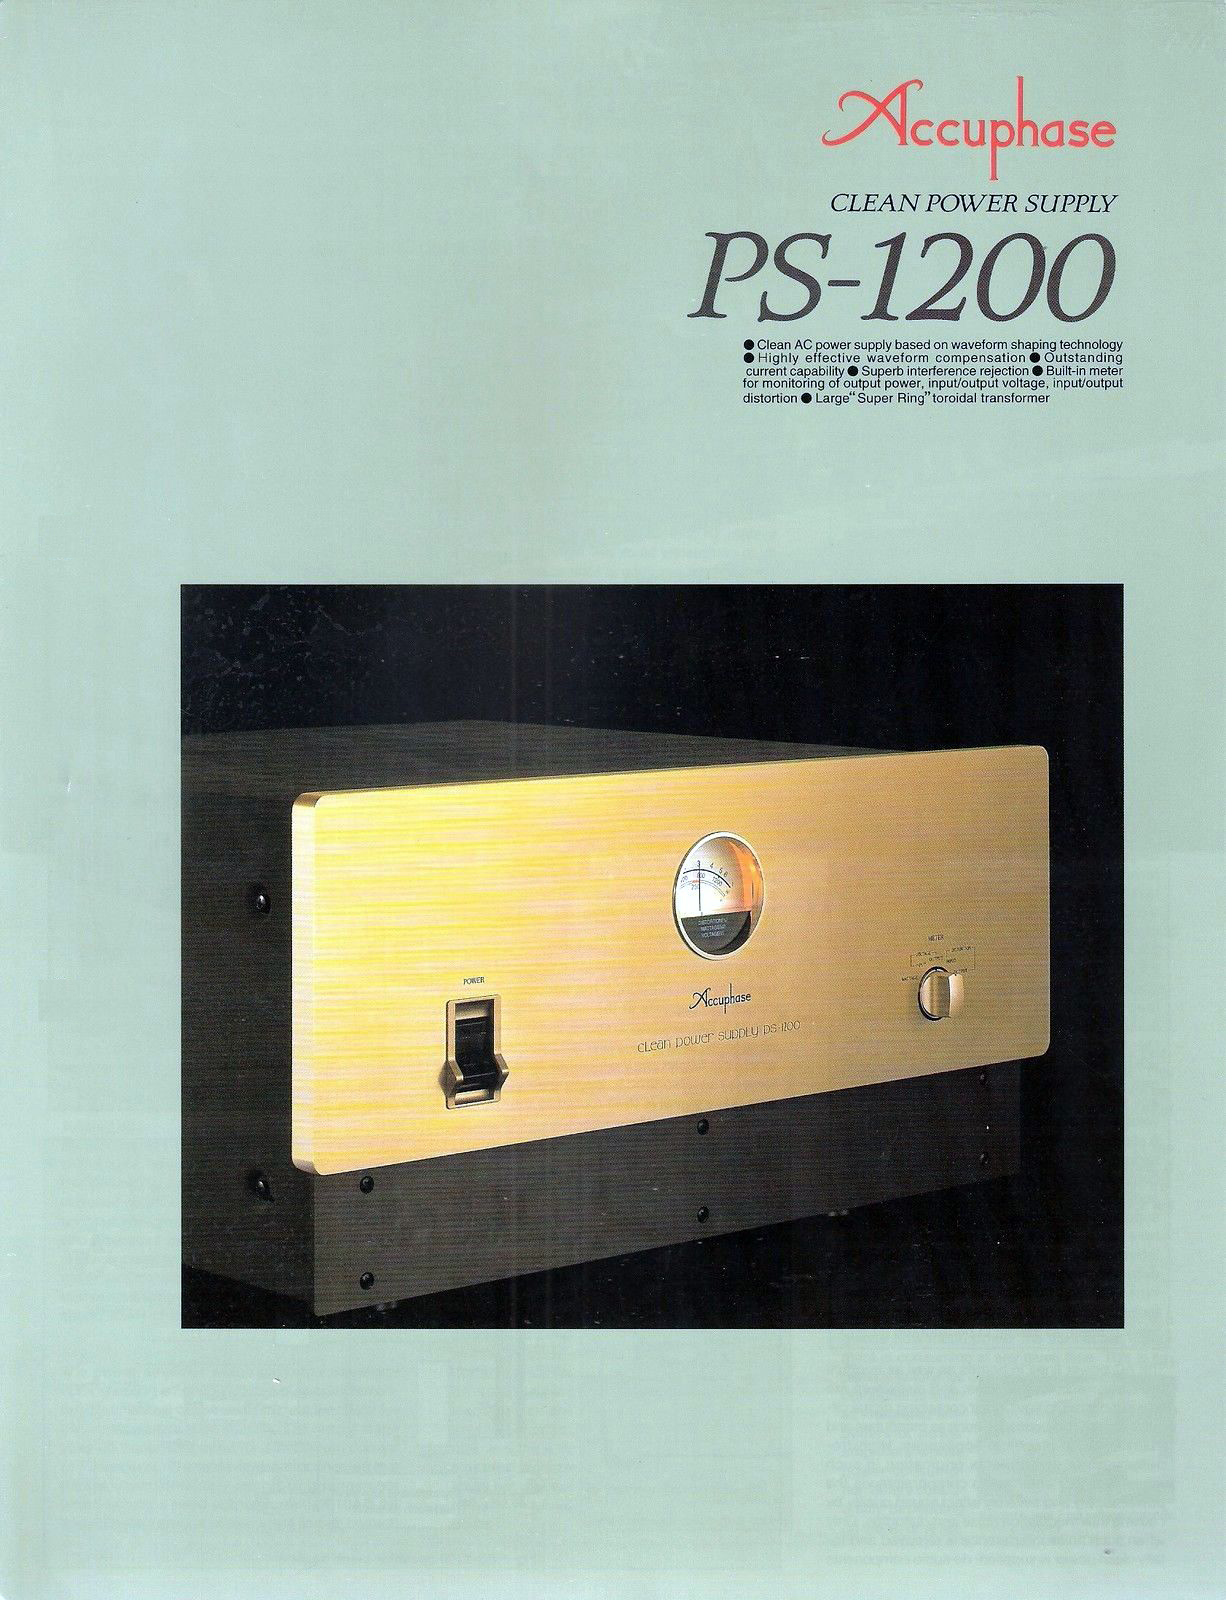 Accuphase PS-1200-Prospekt-1997.jpg